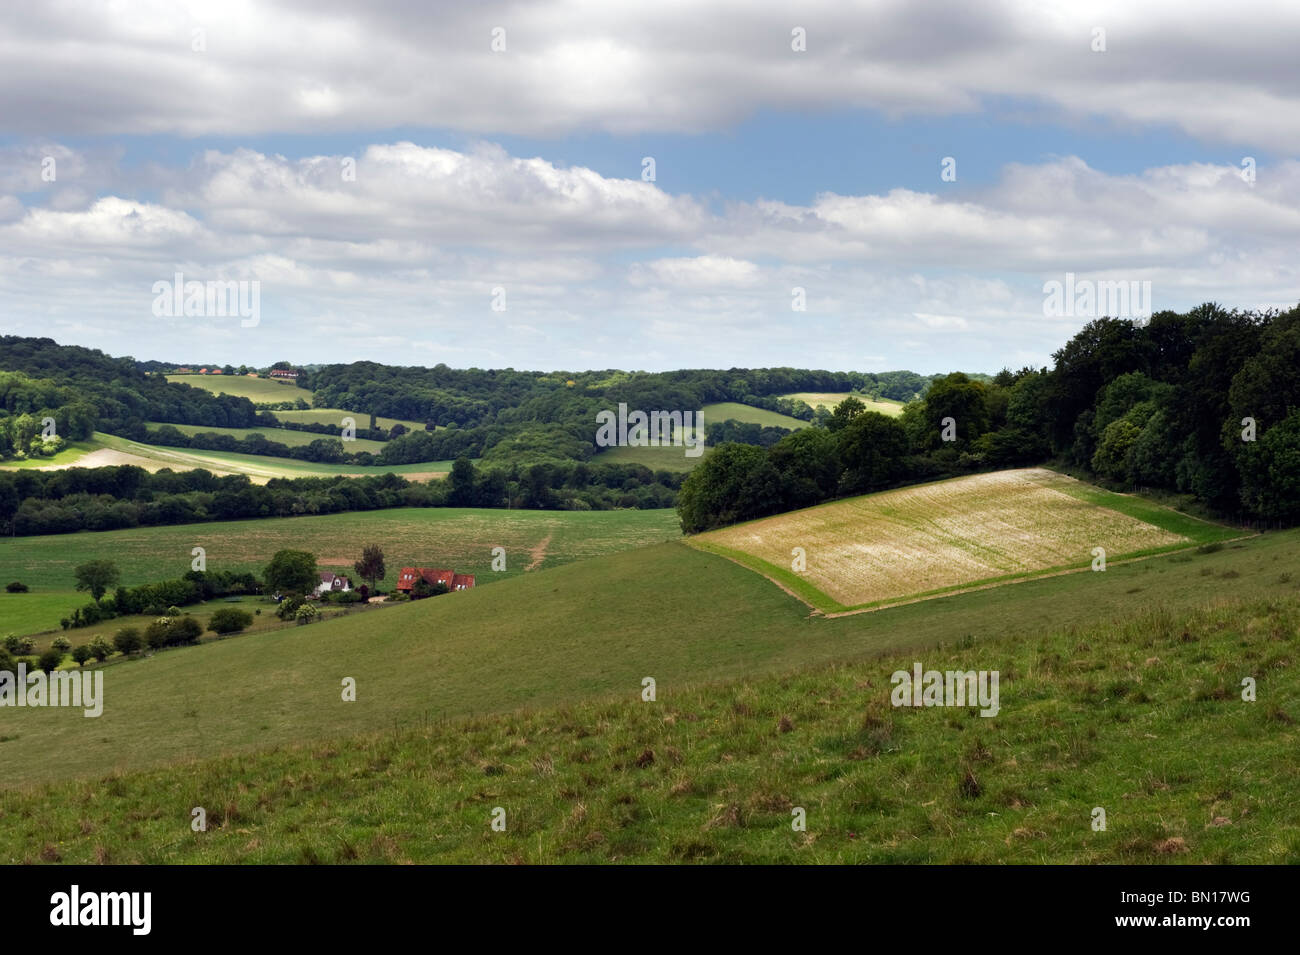 An English landscape countryside view of Hambleden valley in Chilterns countryside, Buckinghamshire UK - Stock Image